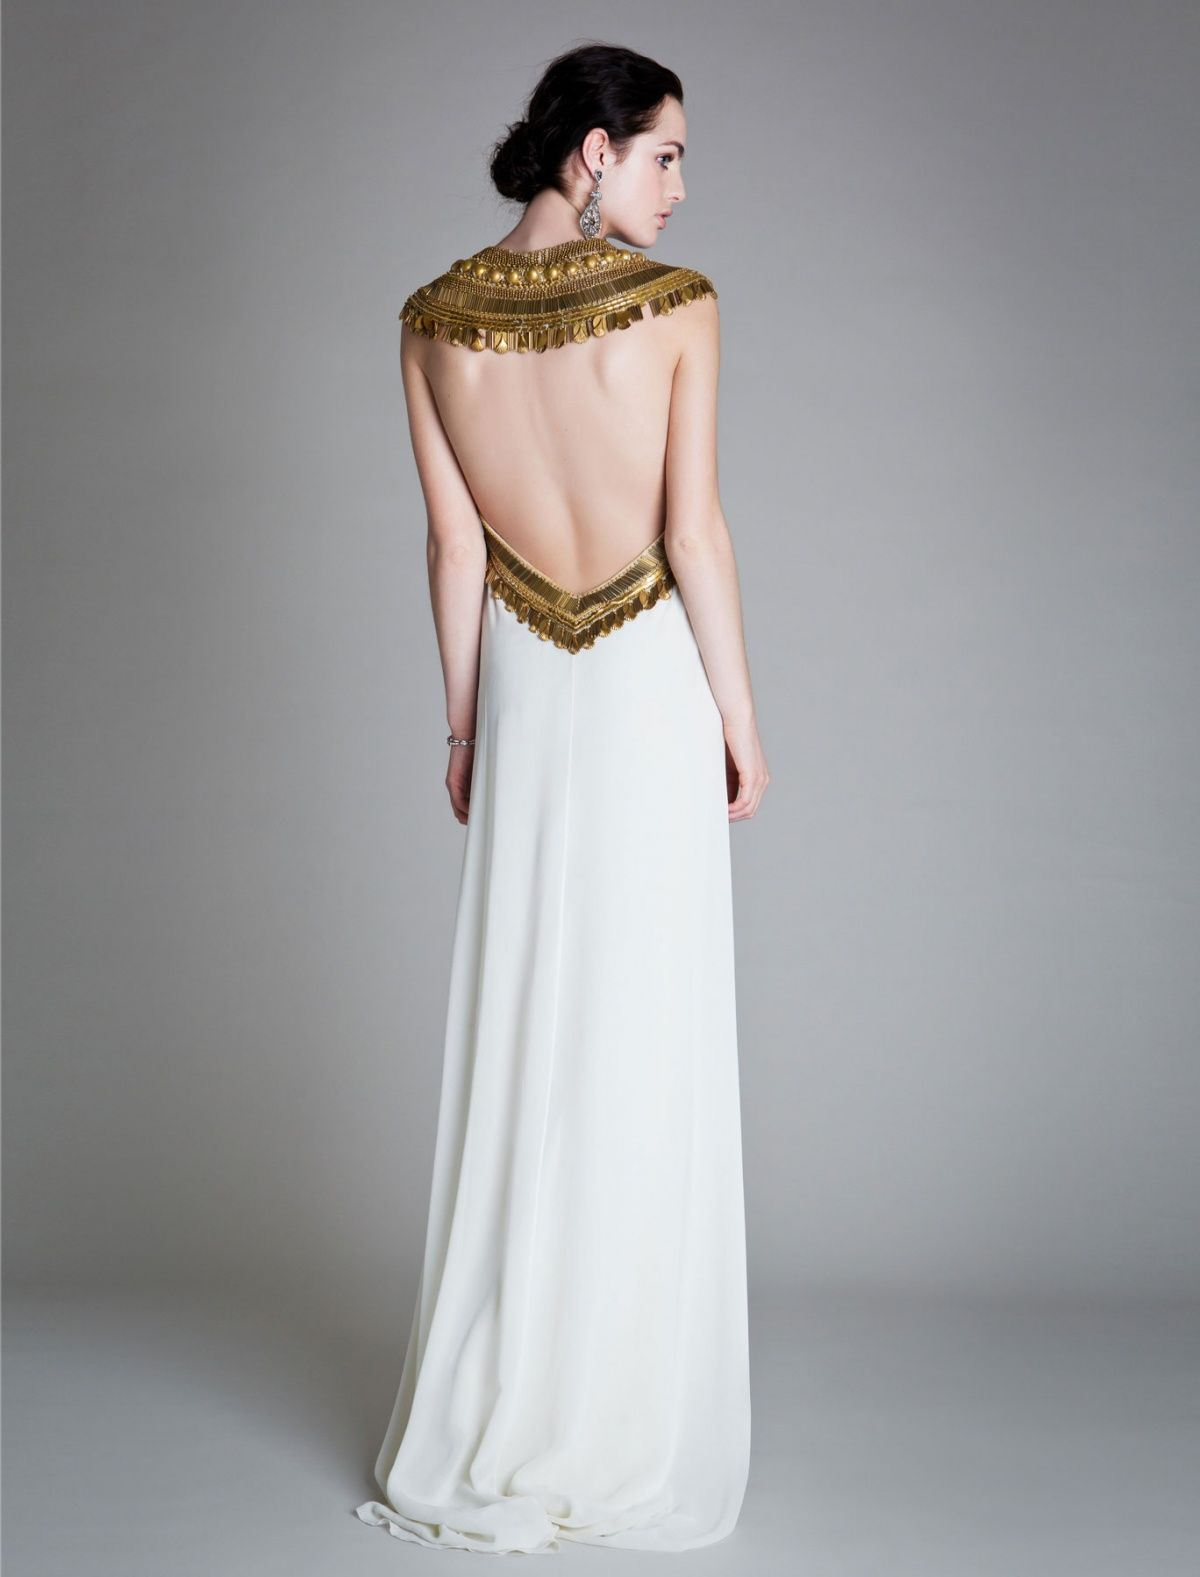 Alice Temperley 2012 Bridal Spring Collection | Dresses | Pinterest ...